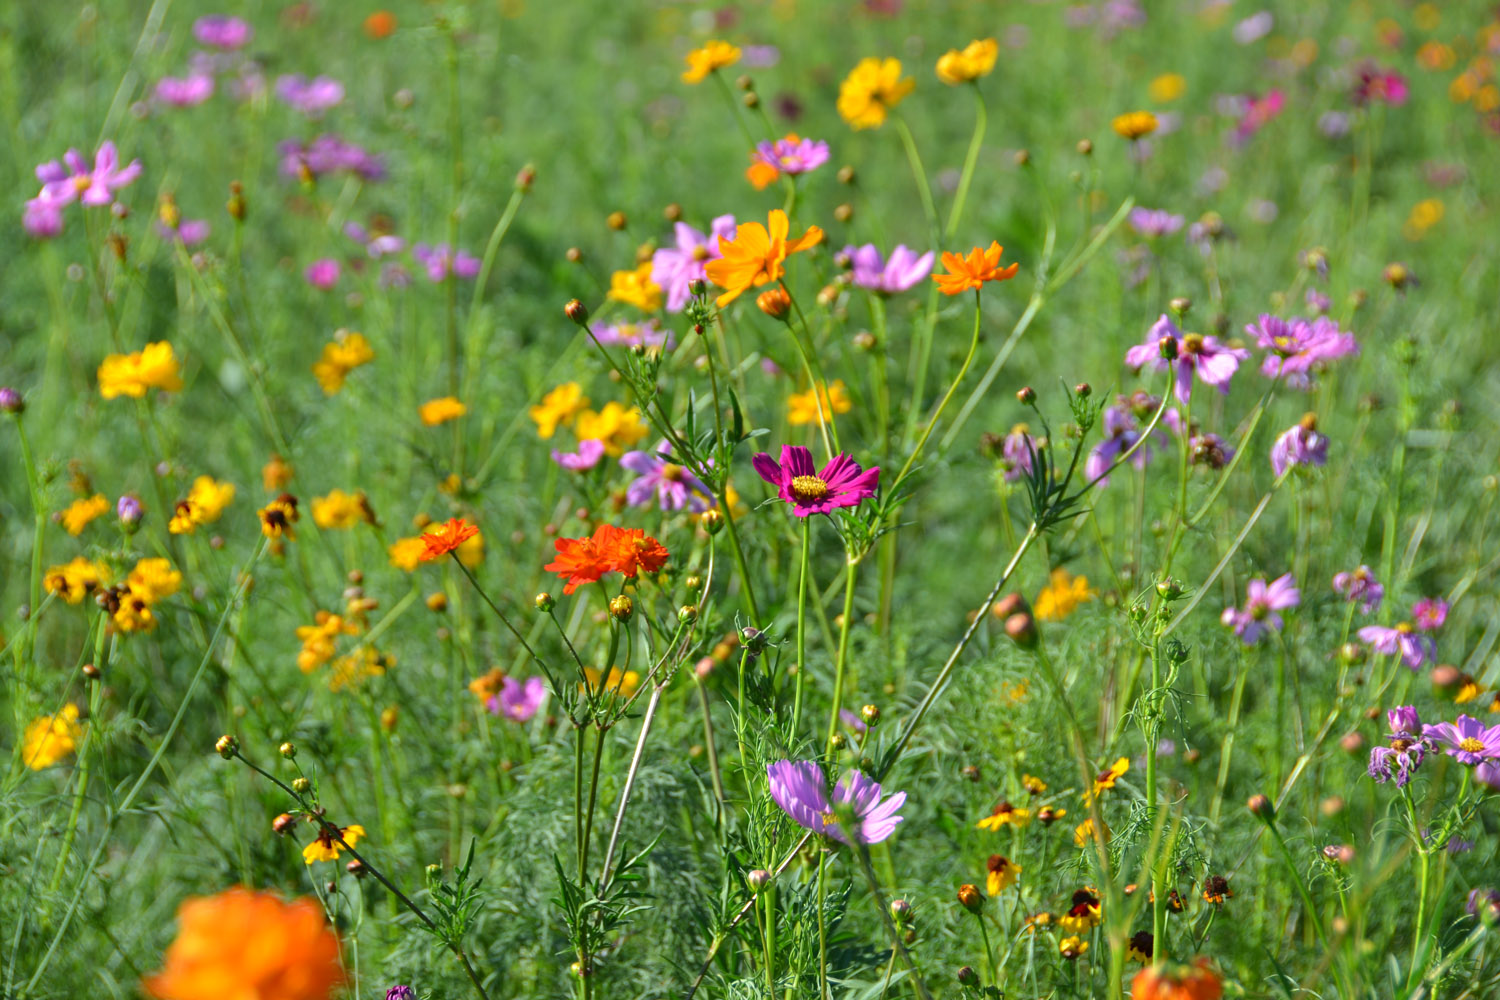 Flowers in a green field include orange, yellow and pink blooms.